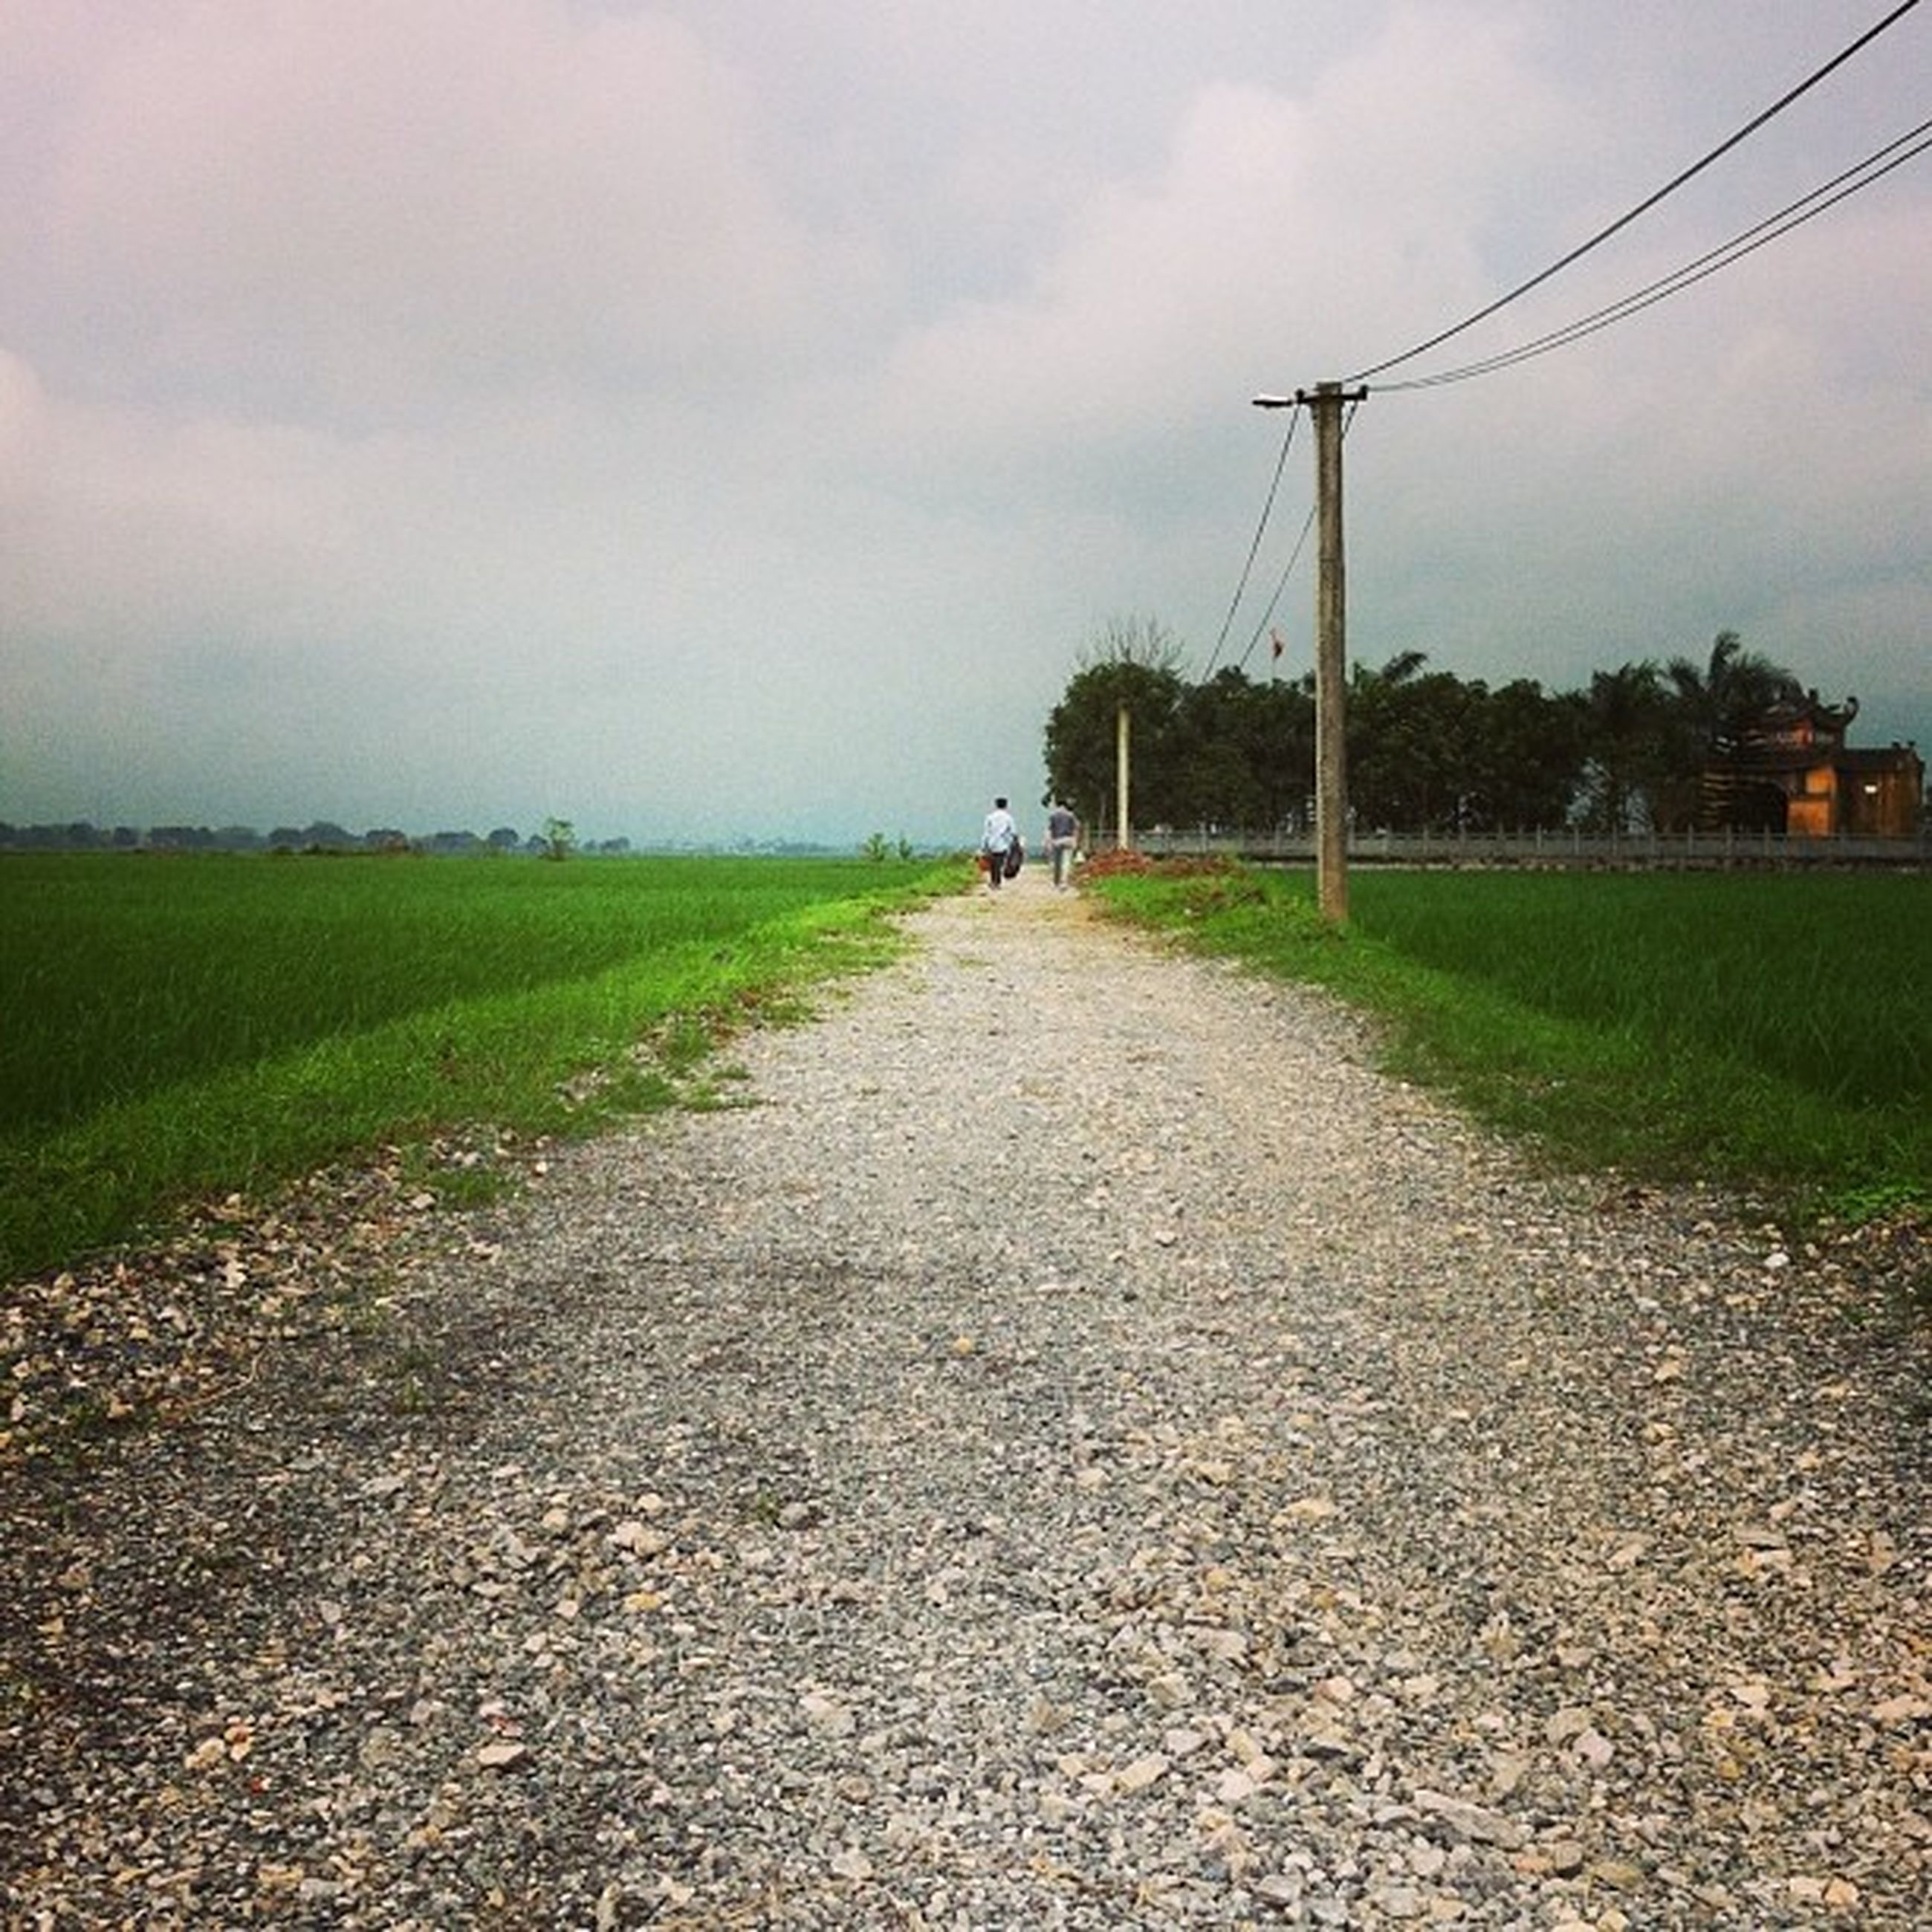 sky, the way forward, field, cloud - sky, grass, landscape, diminishing perspective, dirt road, vanishing point, cloudy, rural scene, agriculture, tranquil scene, tranquility, road, nature, cloud, transportation